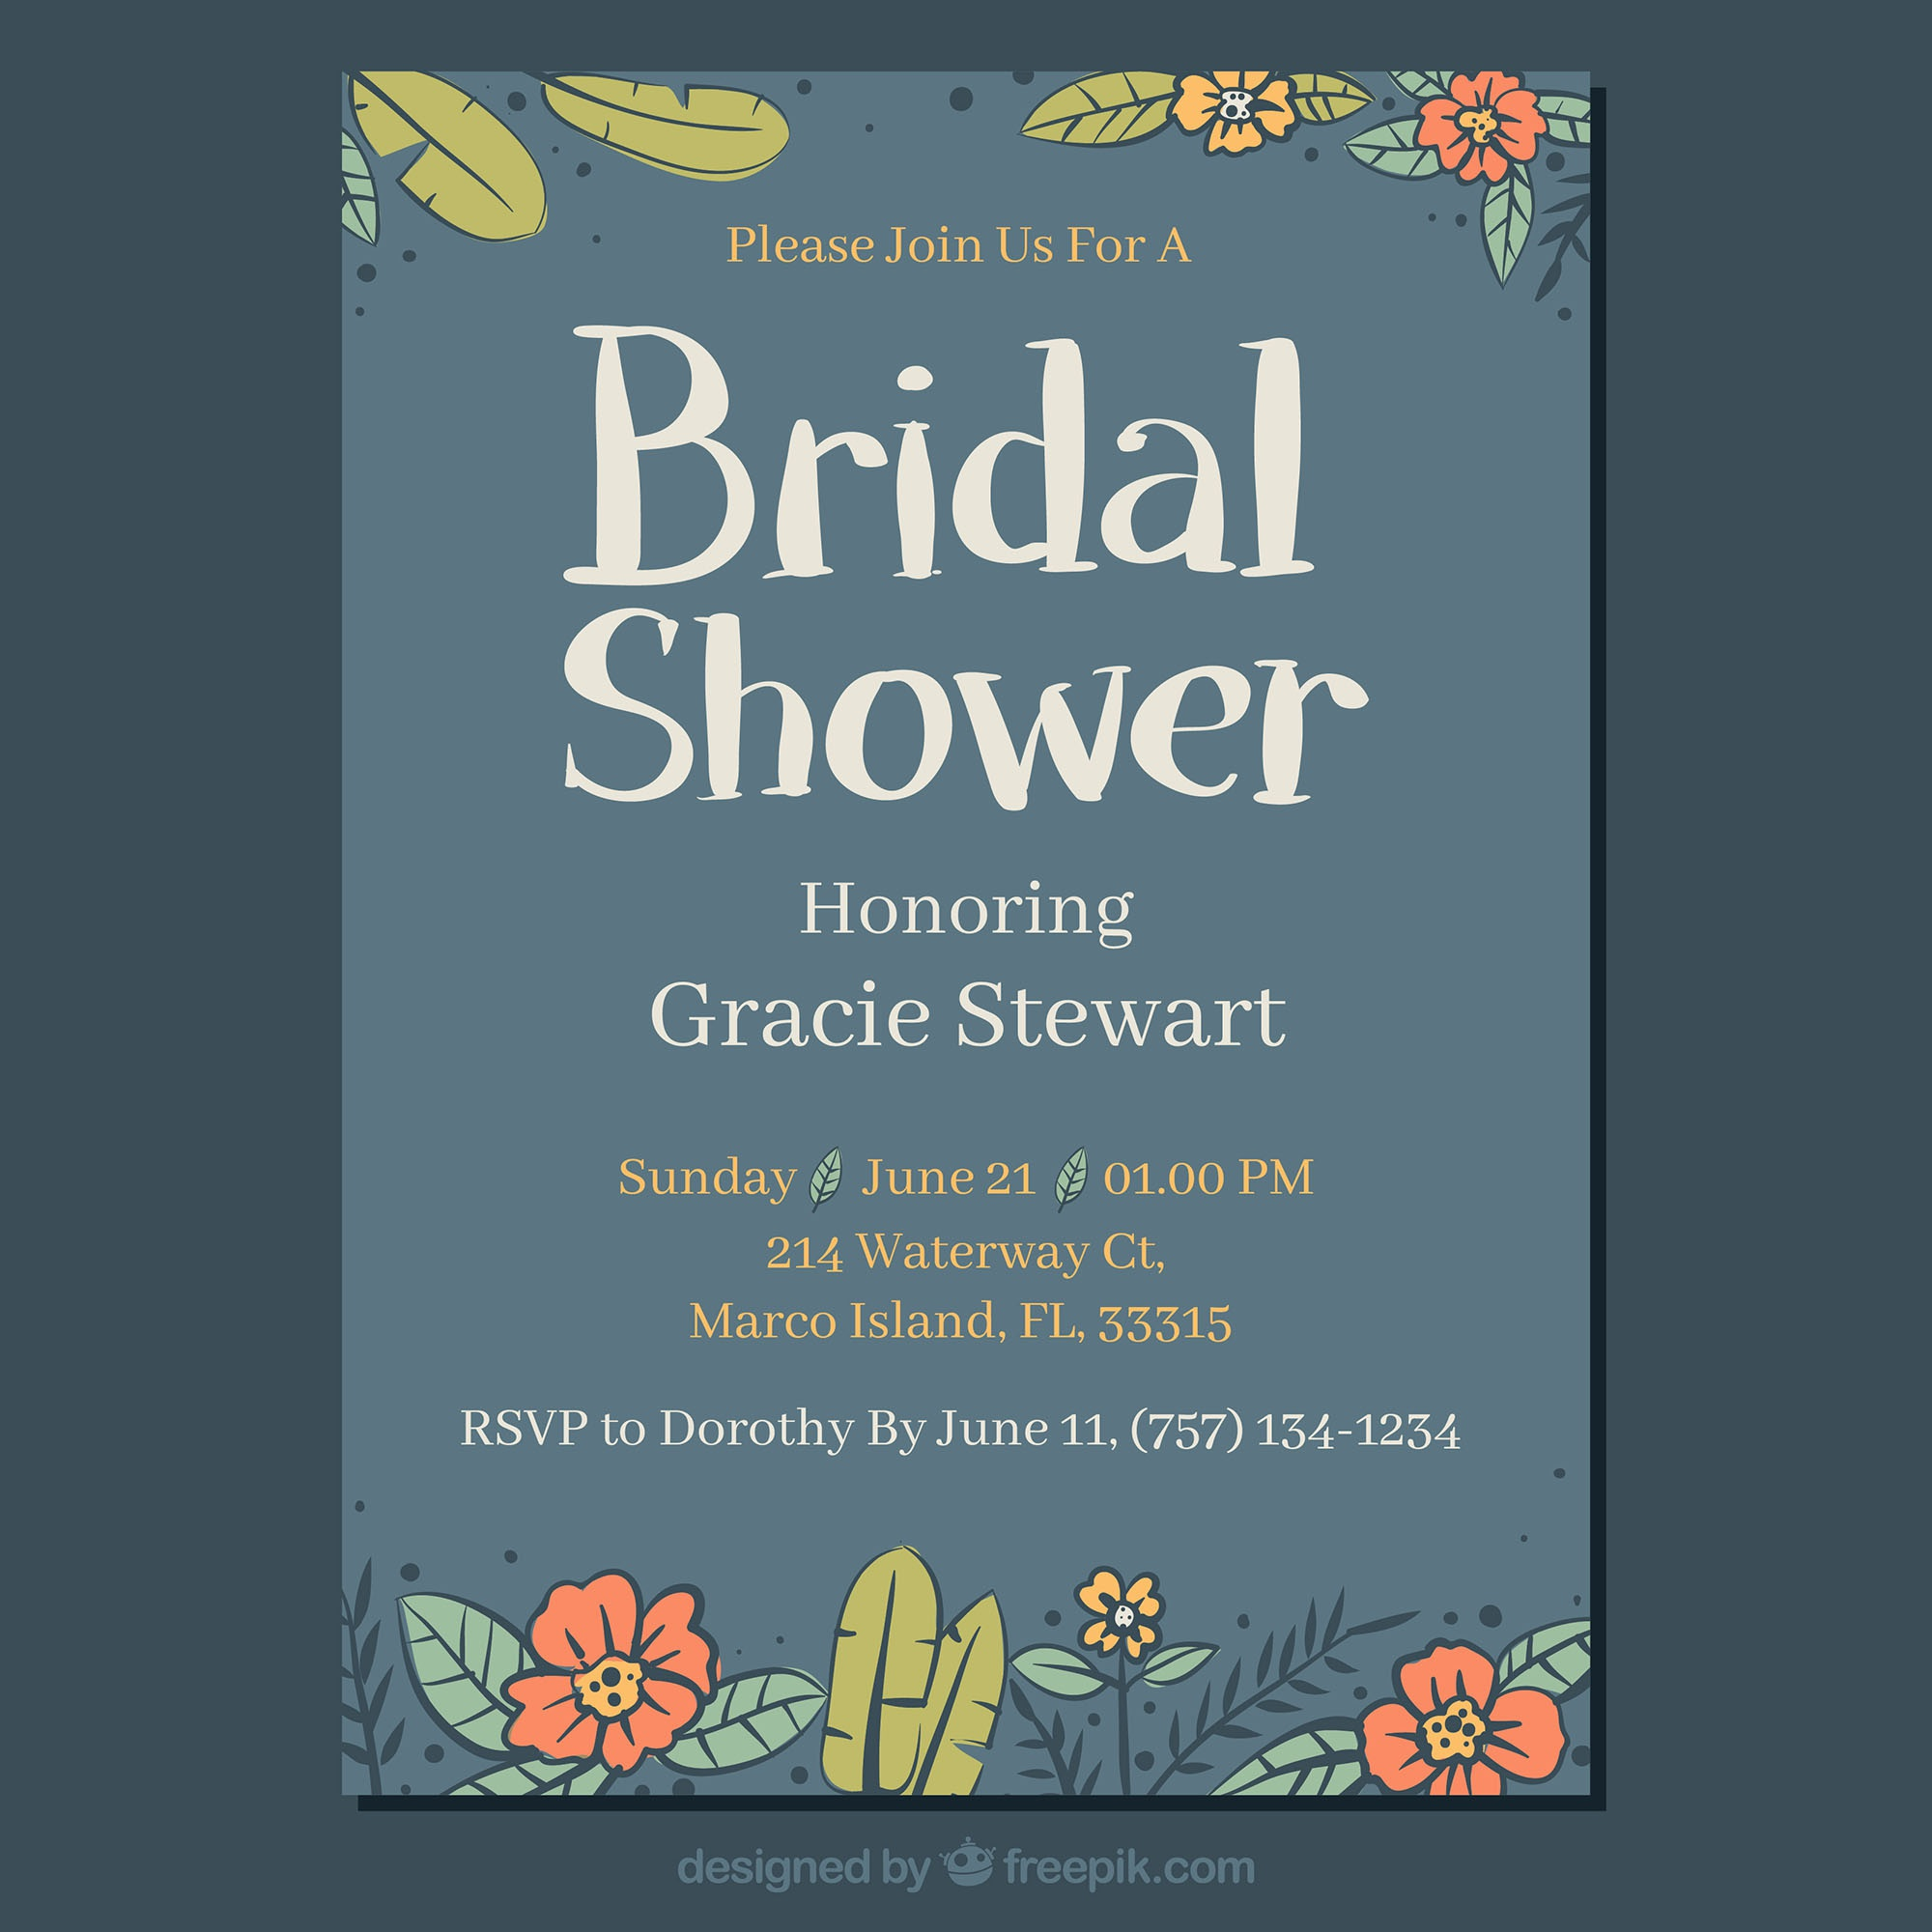 Blue bridal shower invitation with hand-drawn flowers